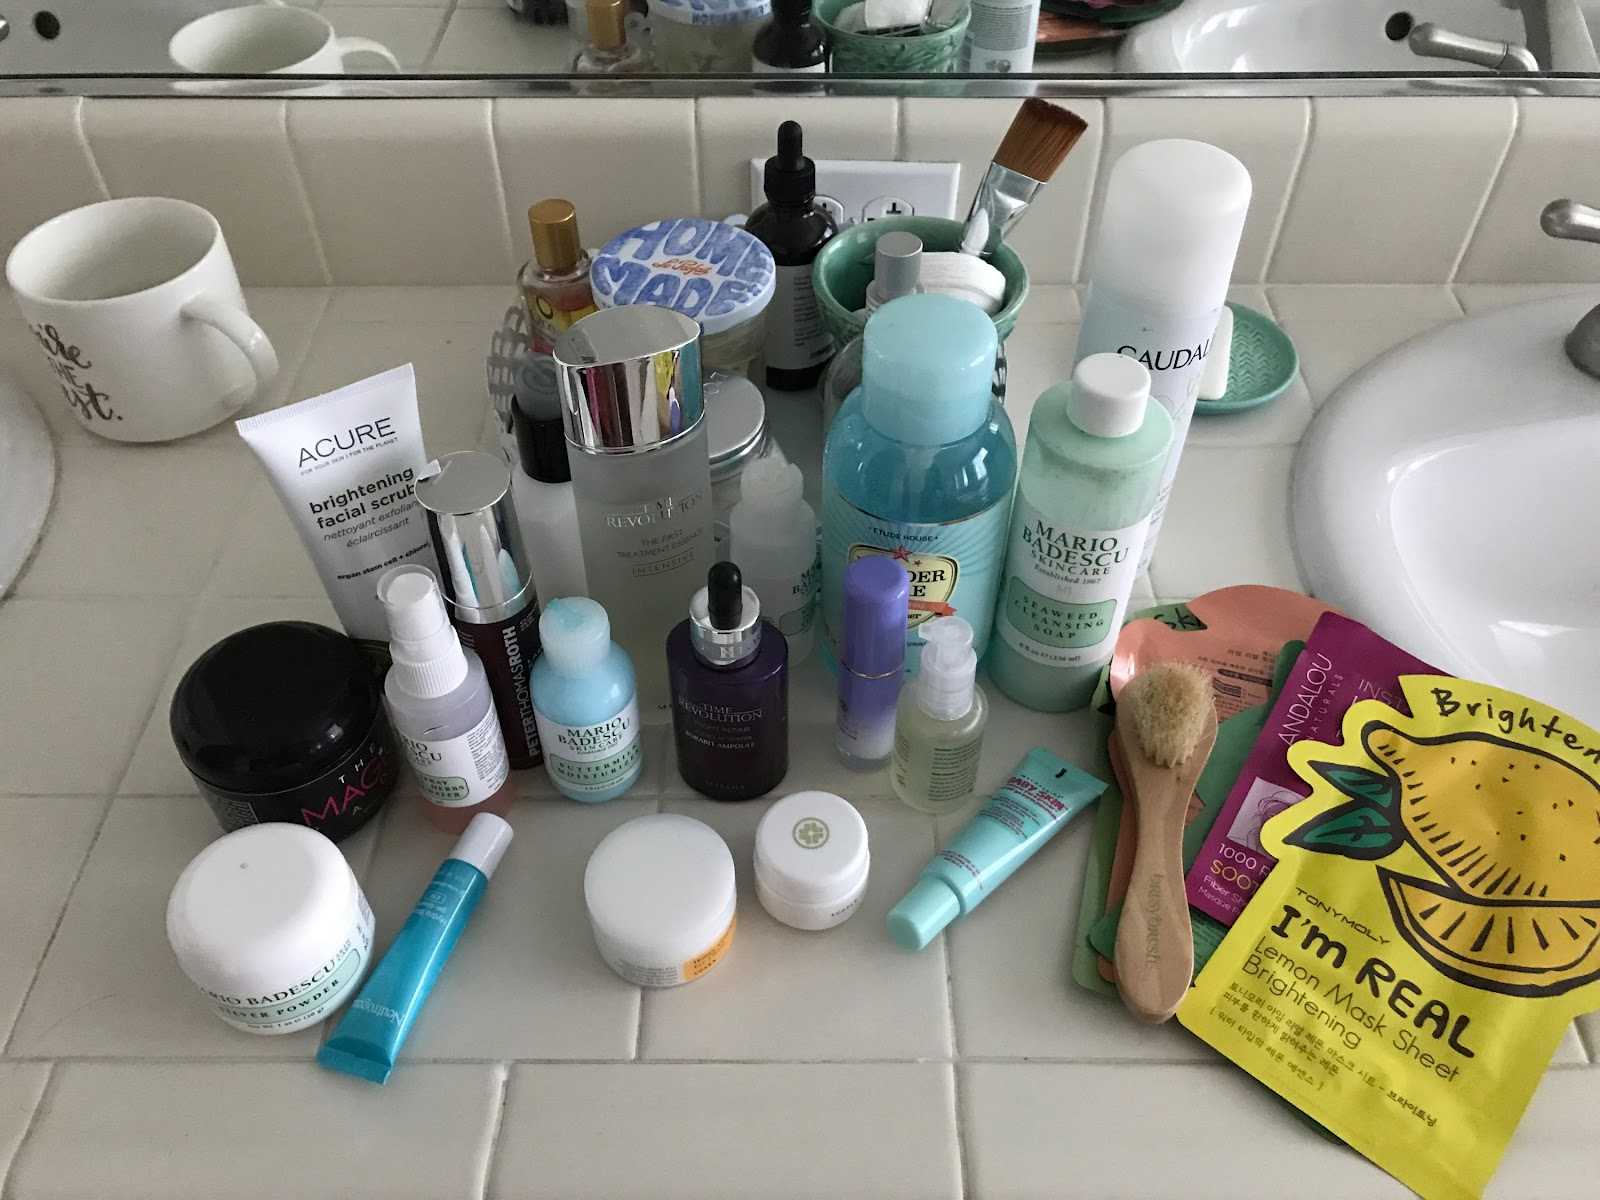 10 Step Korean Skincare? A counter of expensive makeup. Including Peter Thomas Roth's Dragon's Blood.